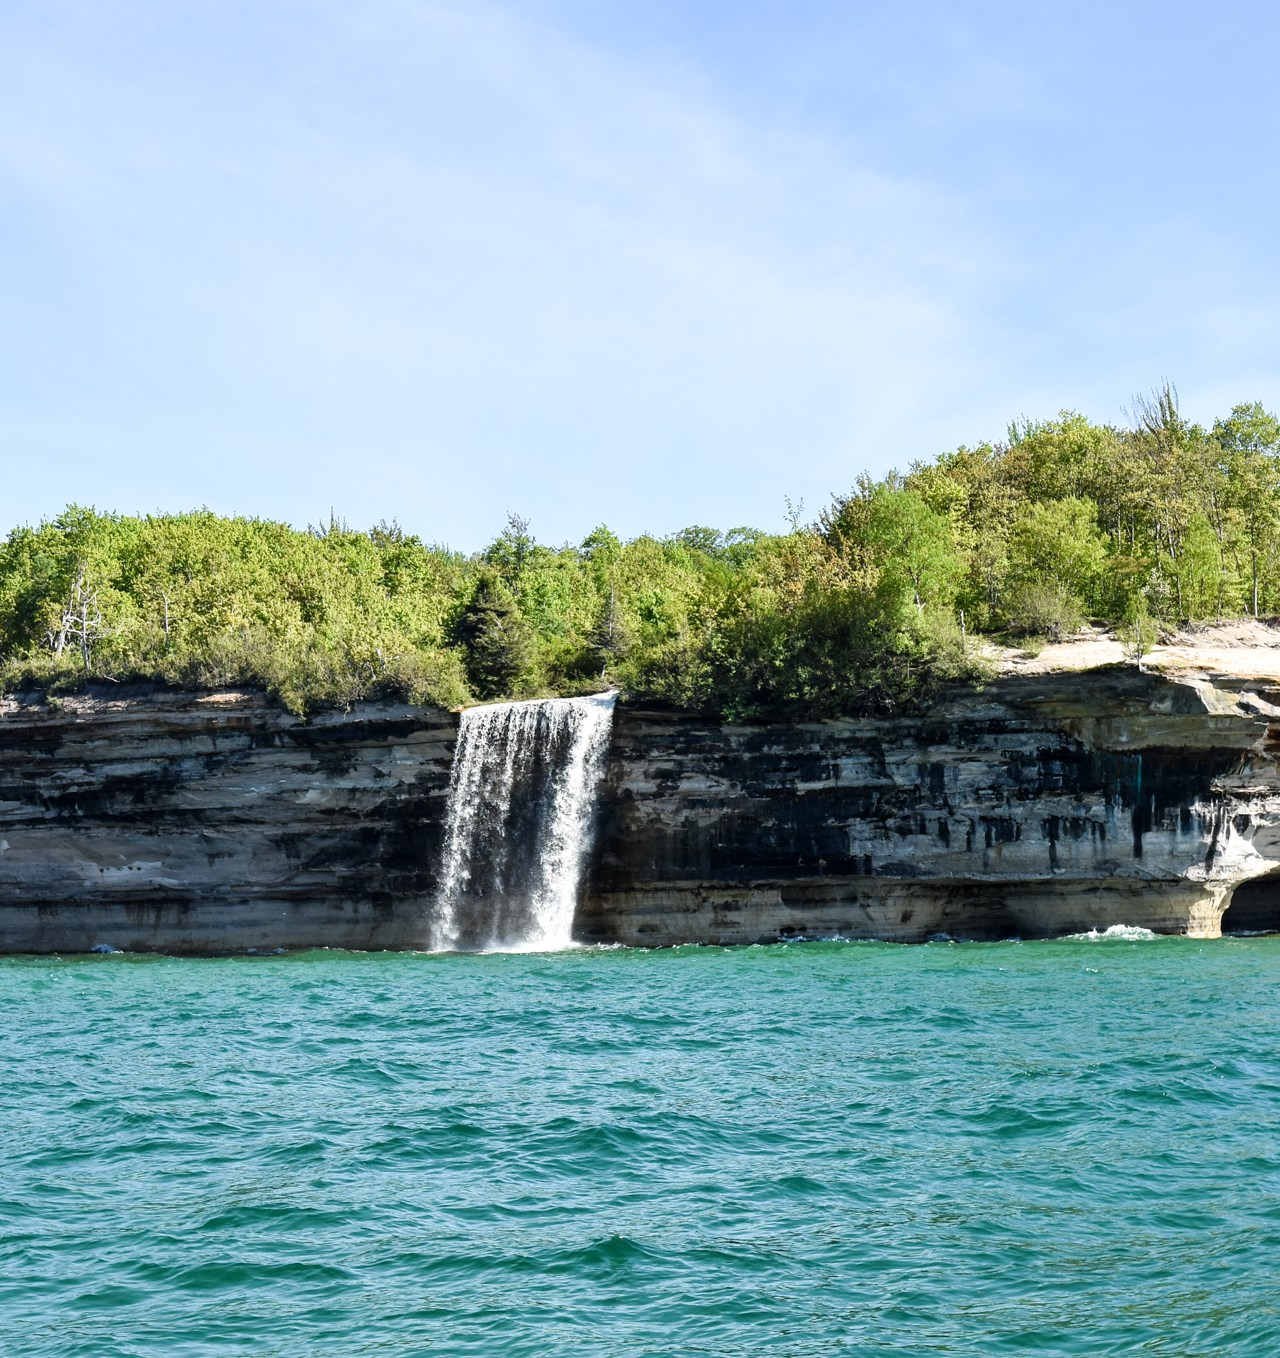 Our Pictured Rocks Cruise Tour on Lake Superior, Michigan